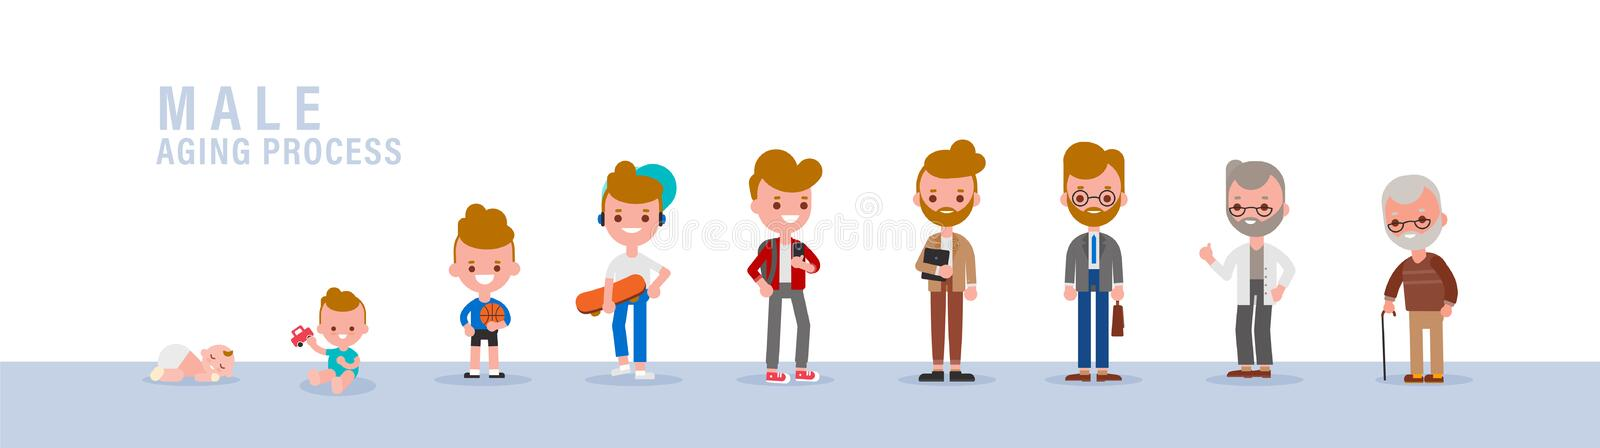 Male from child to old. Isolated vector cartoon illustration in flat design style royalty free stock photography